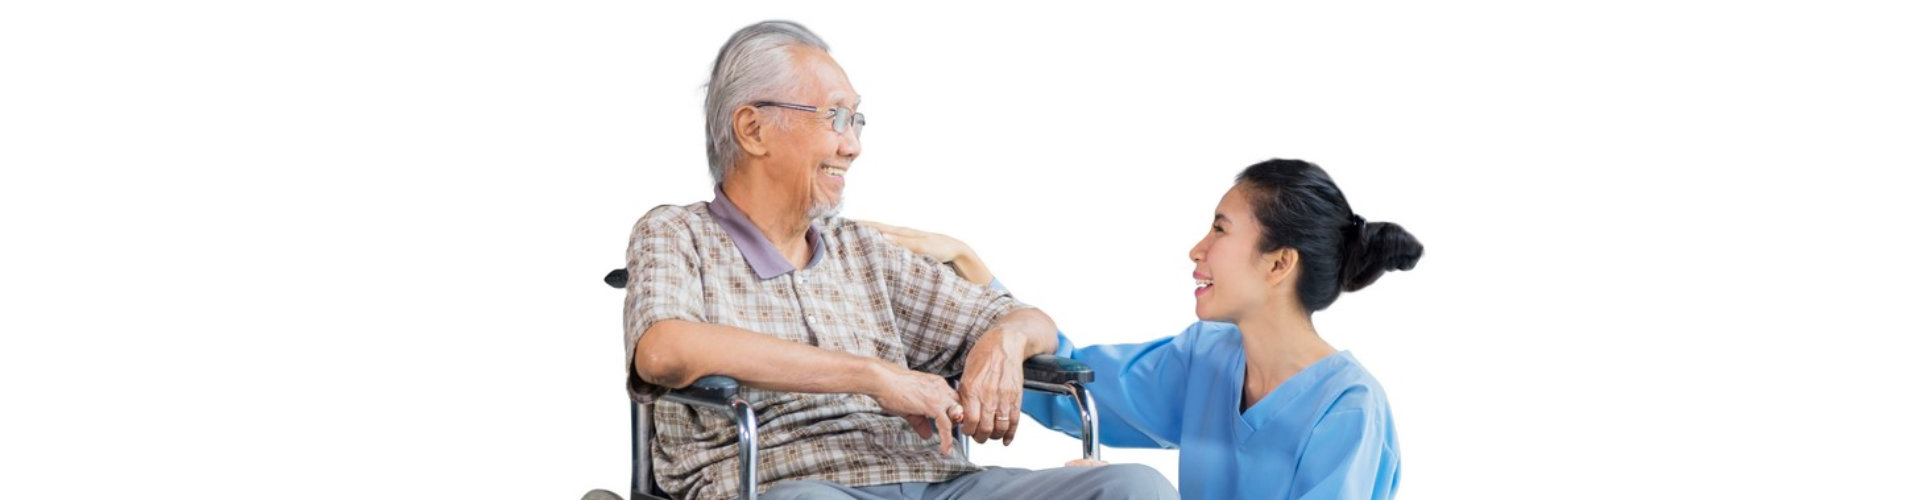 senior man and caregiver talking